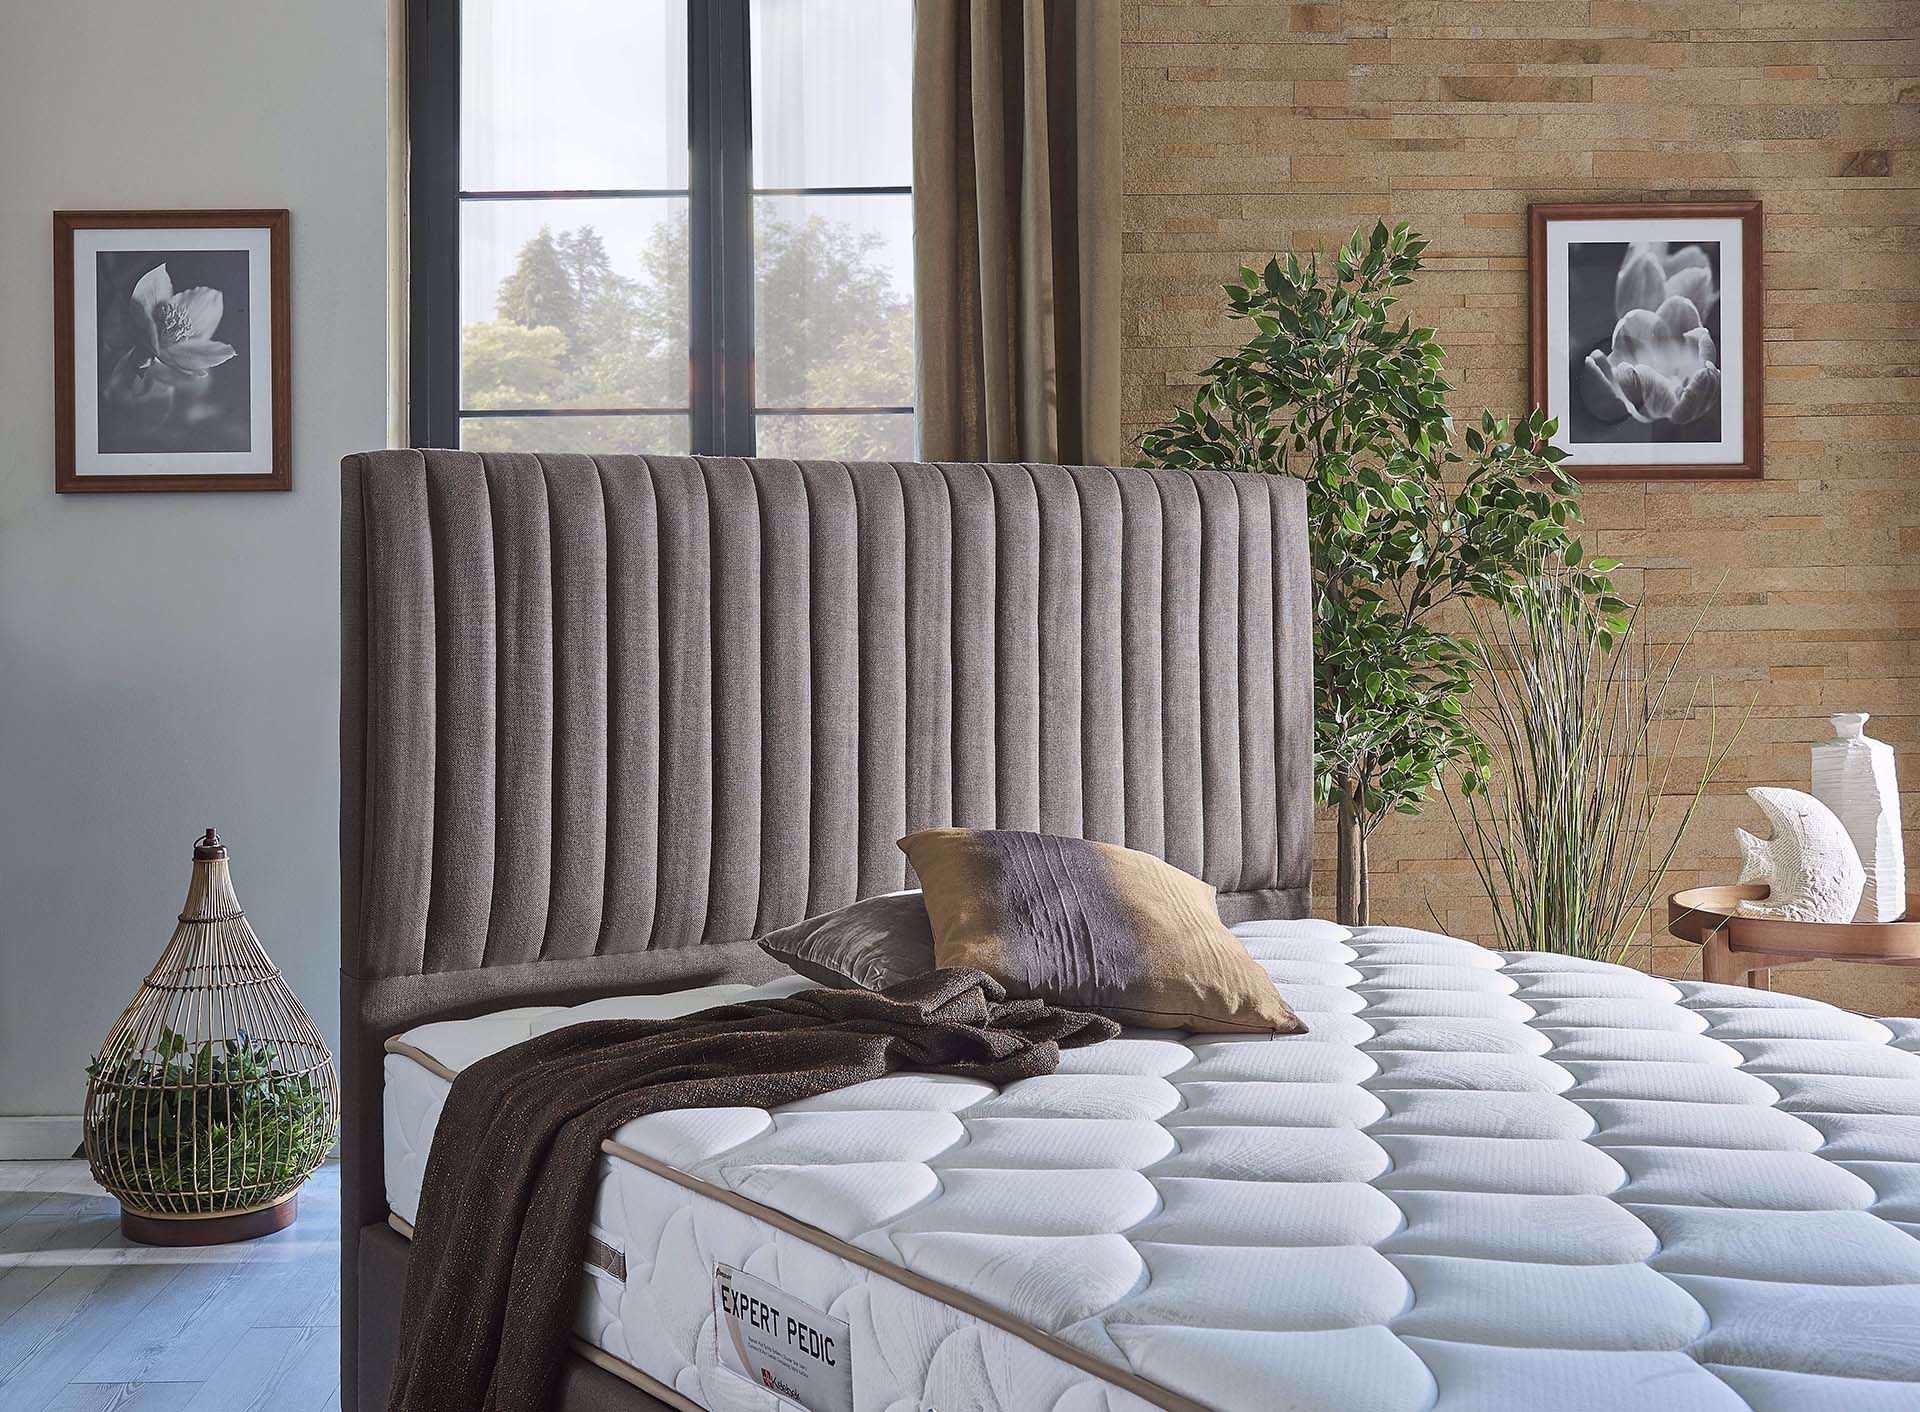 Dream Collection Expert Pedic Yatak 180*200 cm